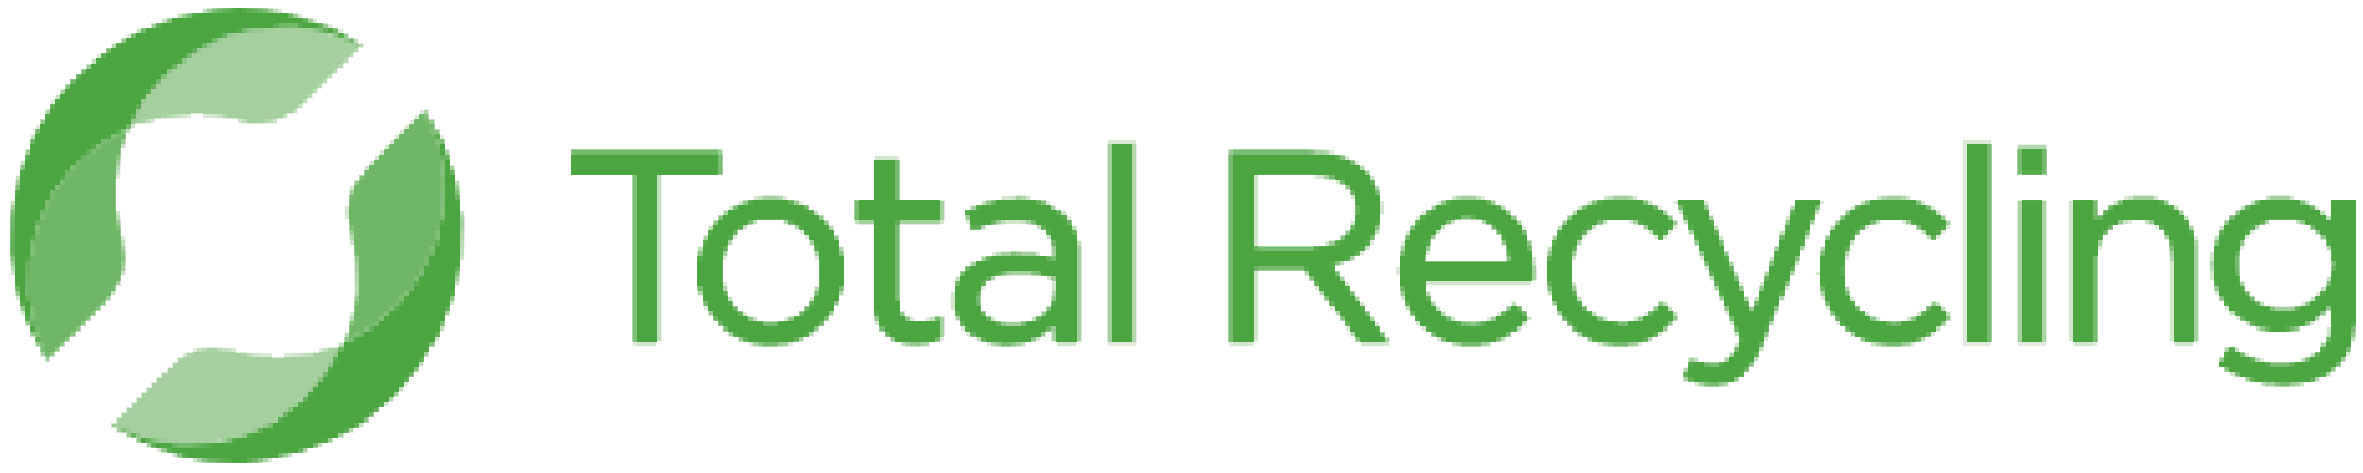 Total Recycling Services Logo